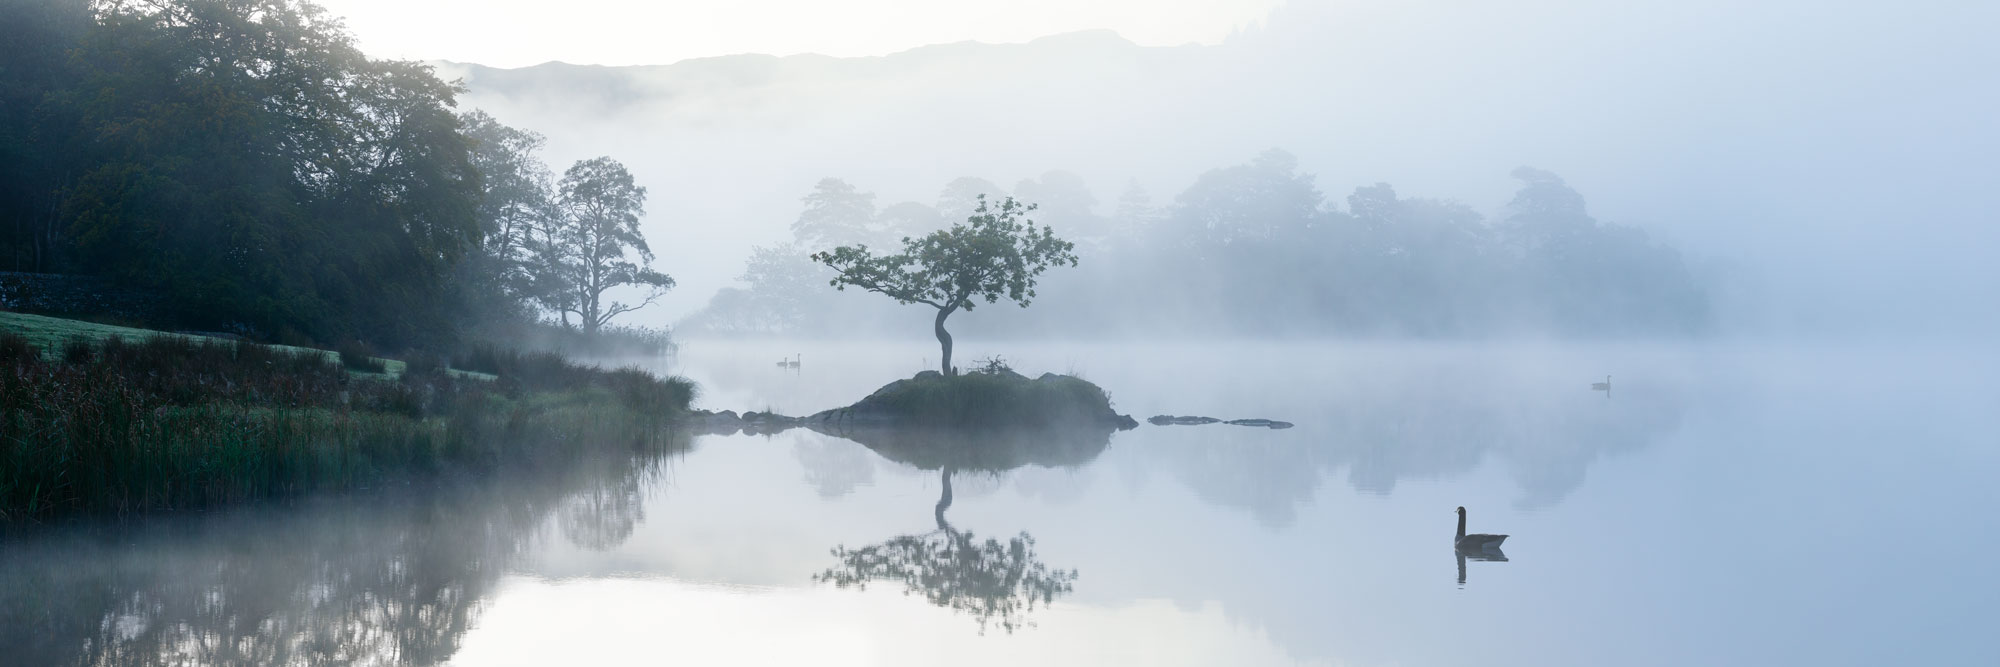 Lone tree on a lake on a misty morning